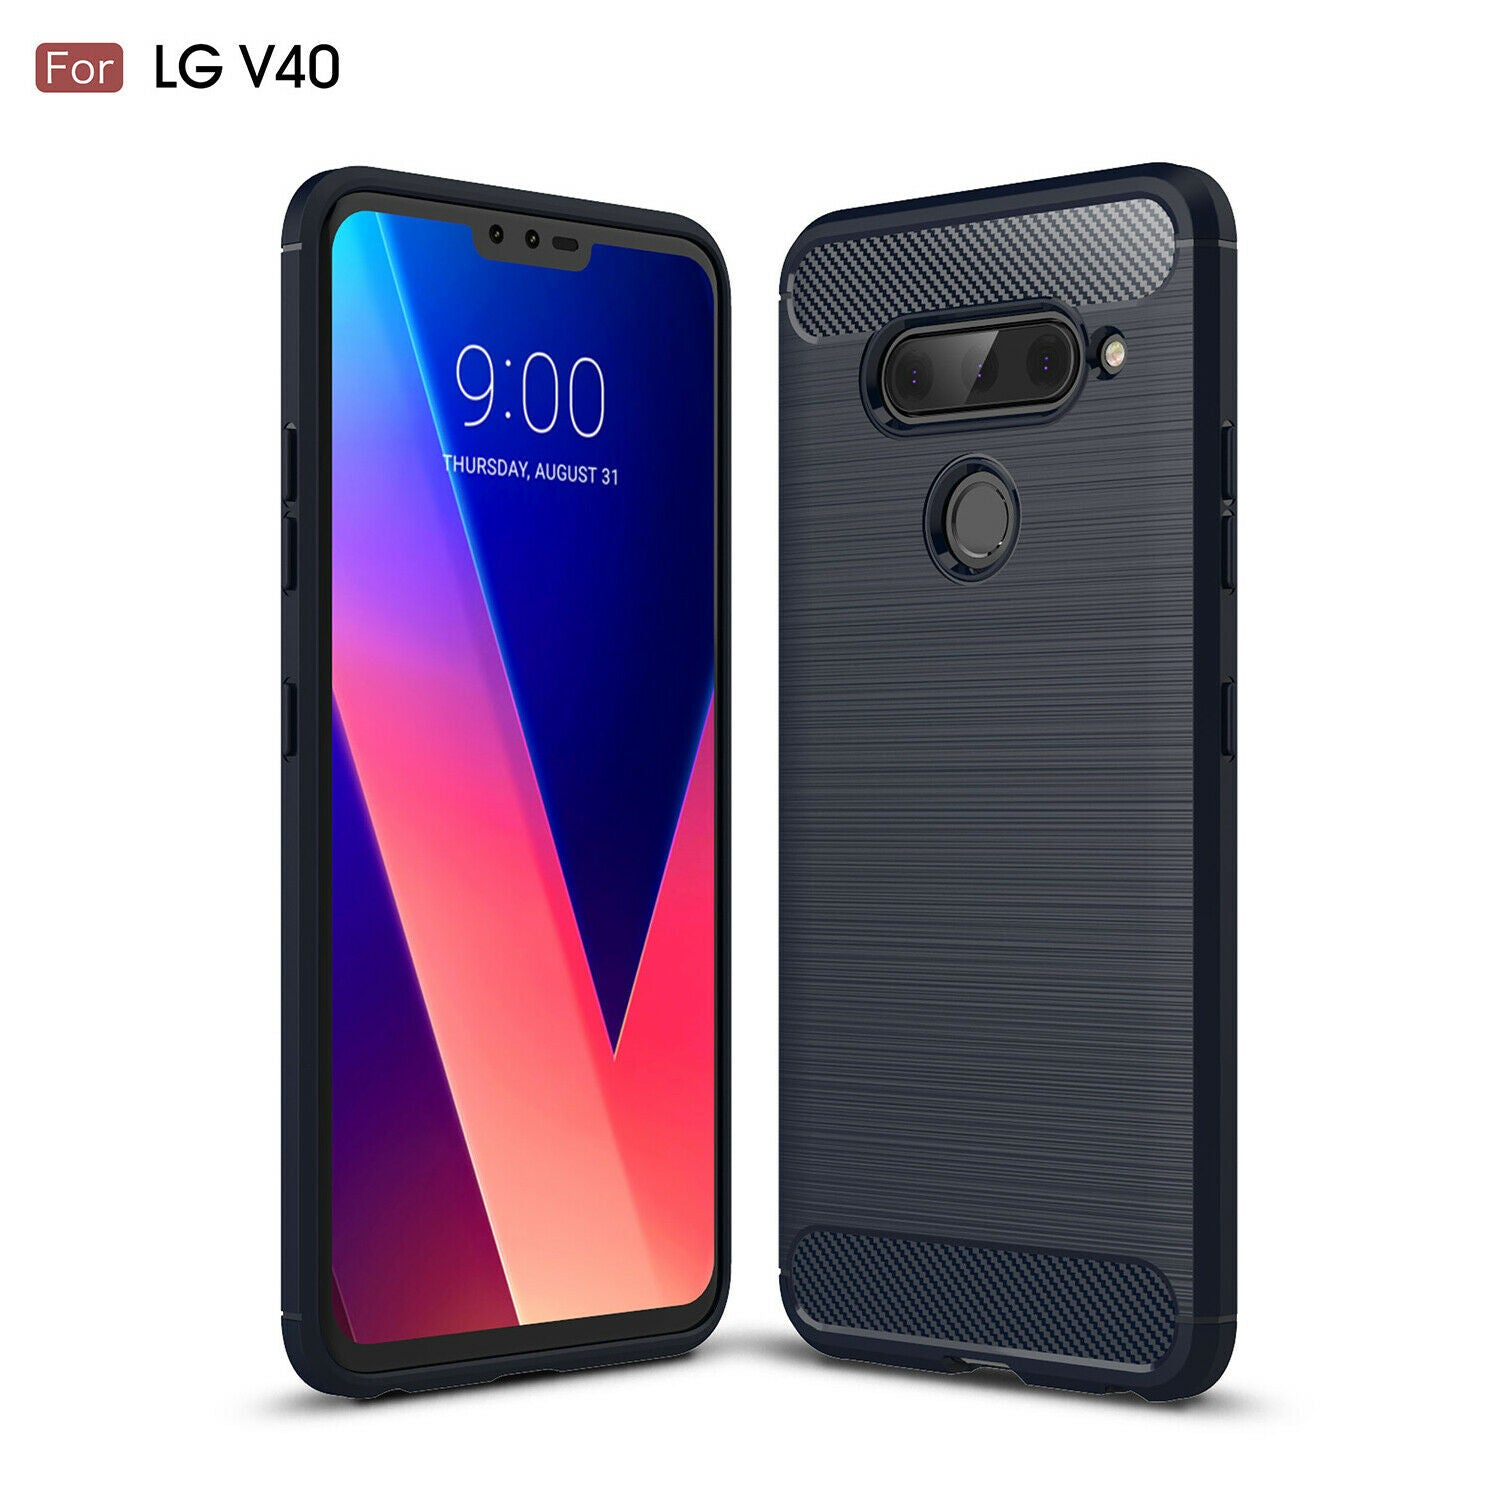 For LG V40 ThinQ Phone Case Soft TPU Rubber Shockproof Slim Cover